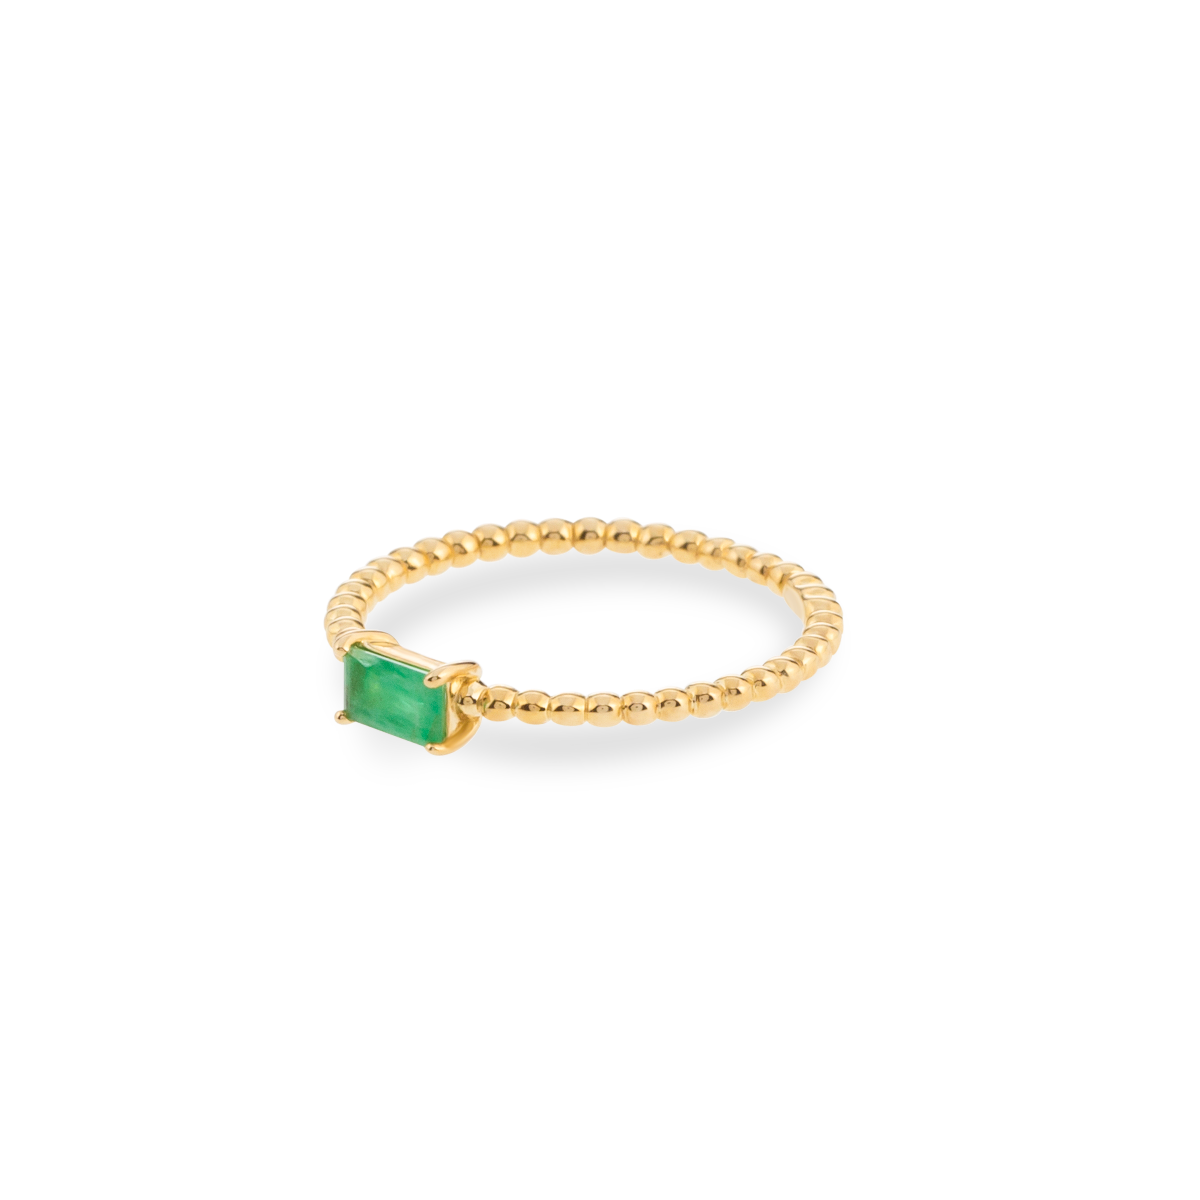 Bubble Birthstone Ring 9K gold may